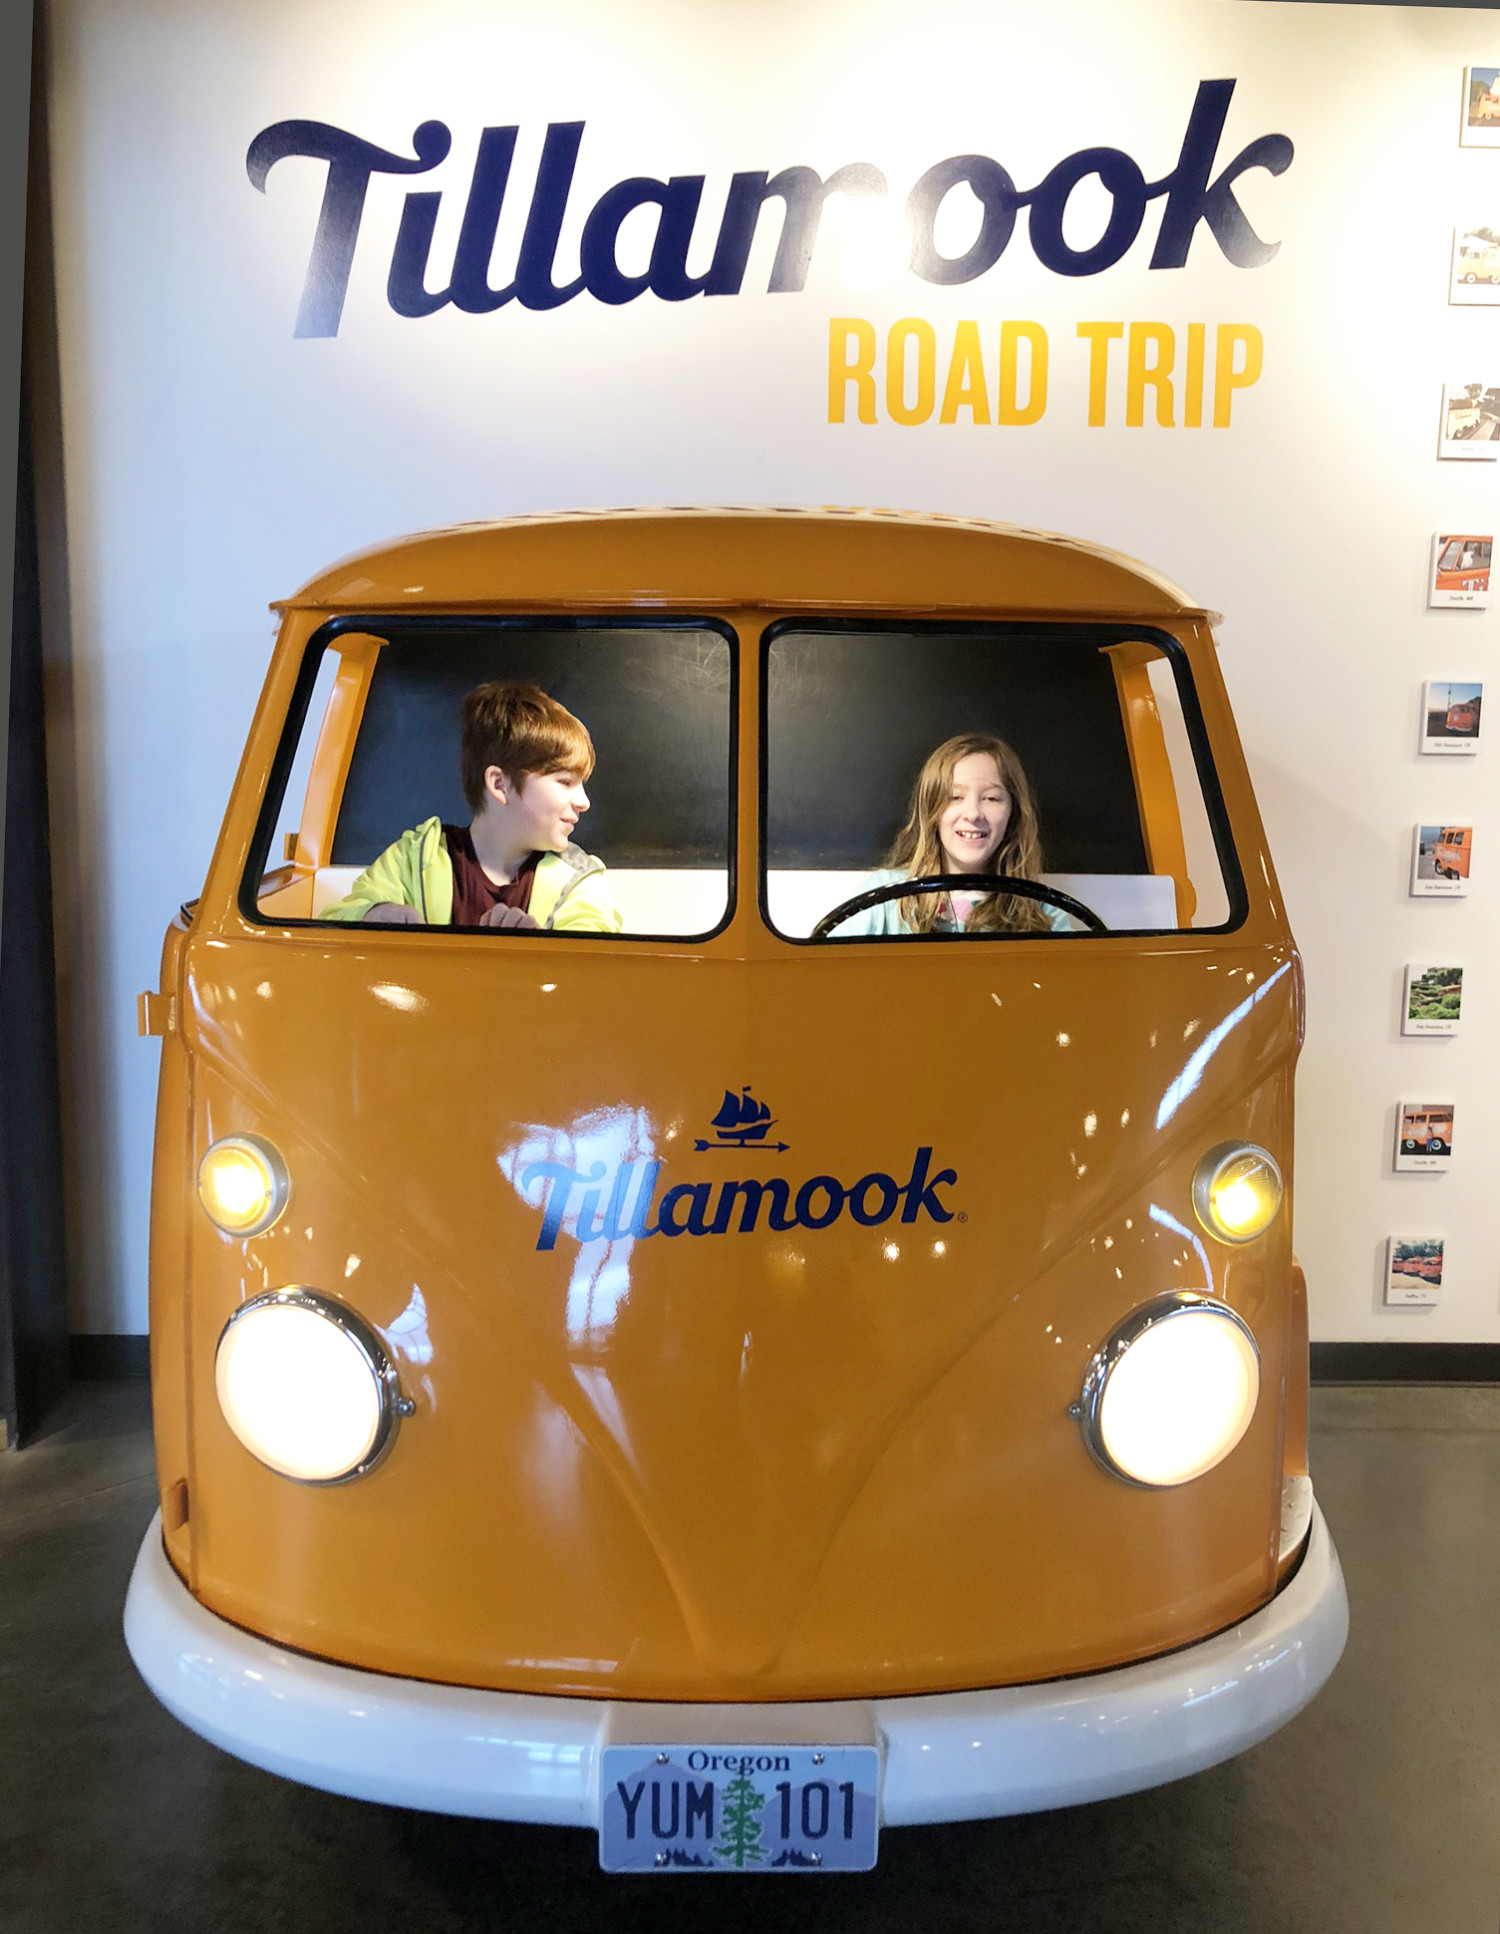 Newly Remodeled Tillamook Creamery Is A Must For Portandians And Visitors Alike